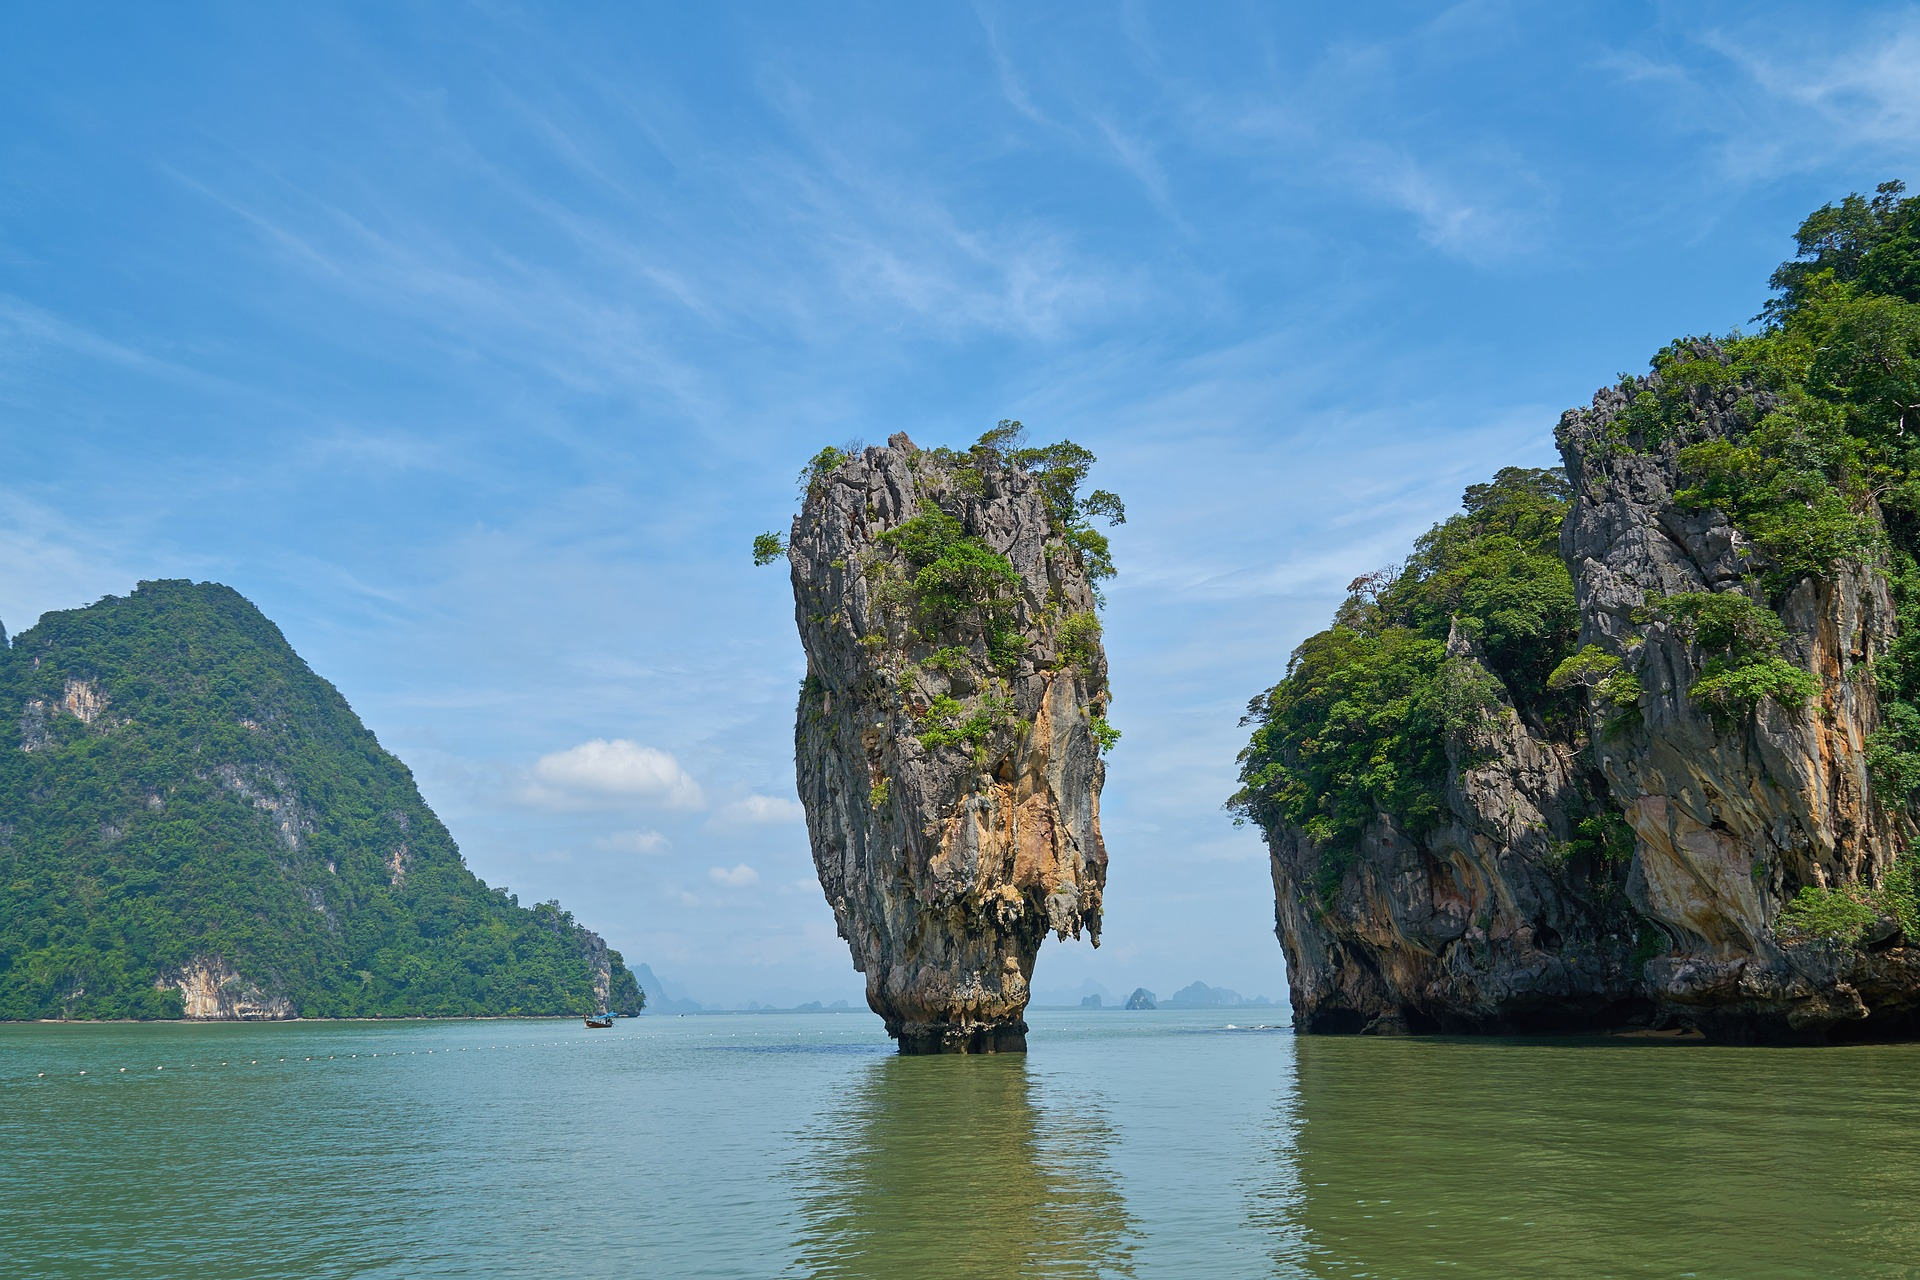 phang-nga-bay big rock island in Thailand